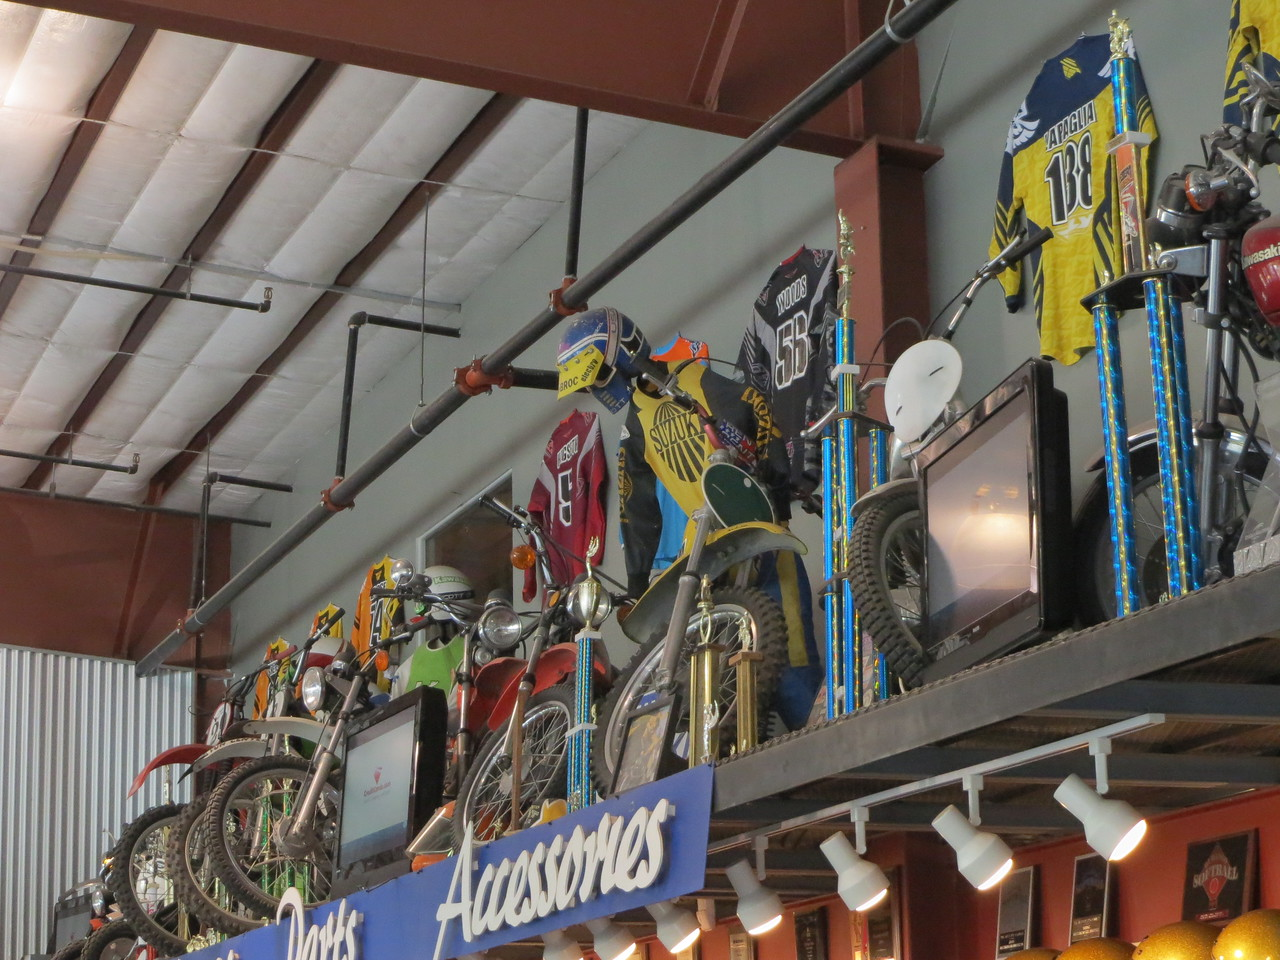 Day 4 (357 miles): Some old bikes inside 'The Fun Center'